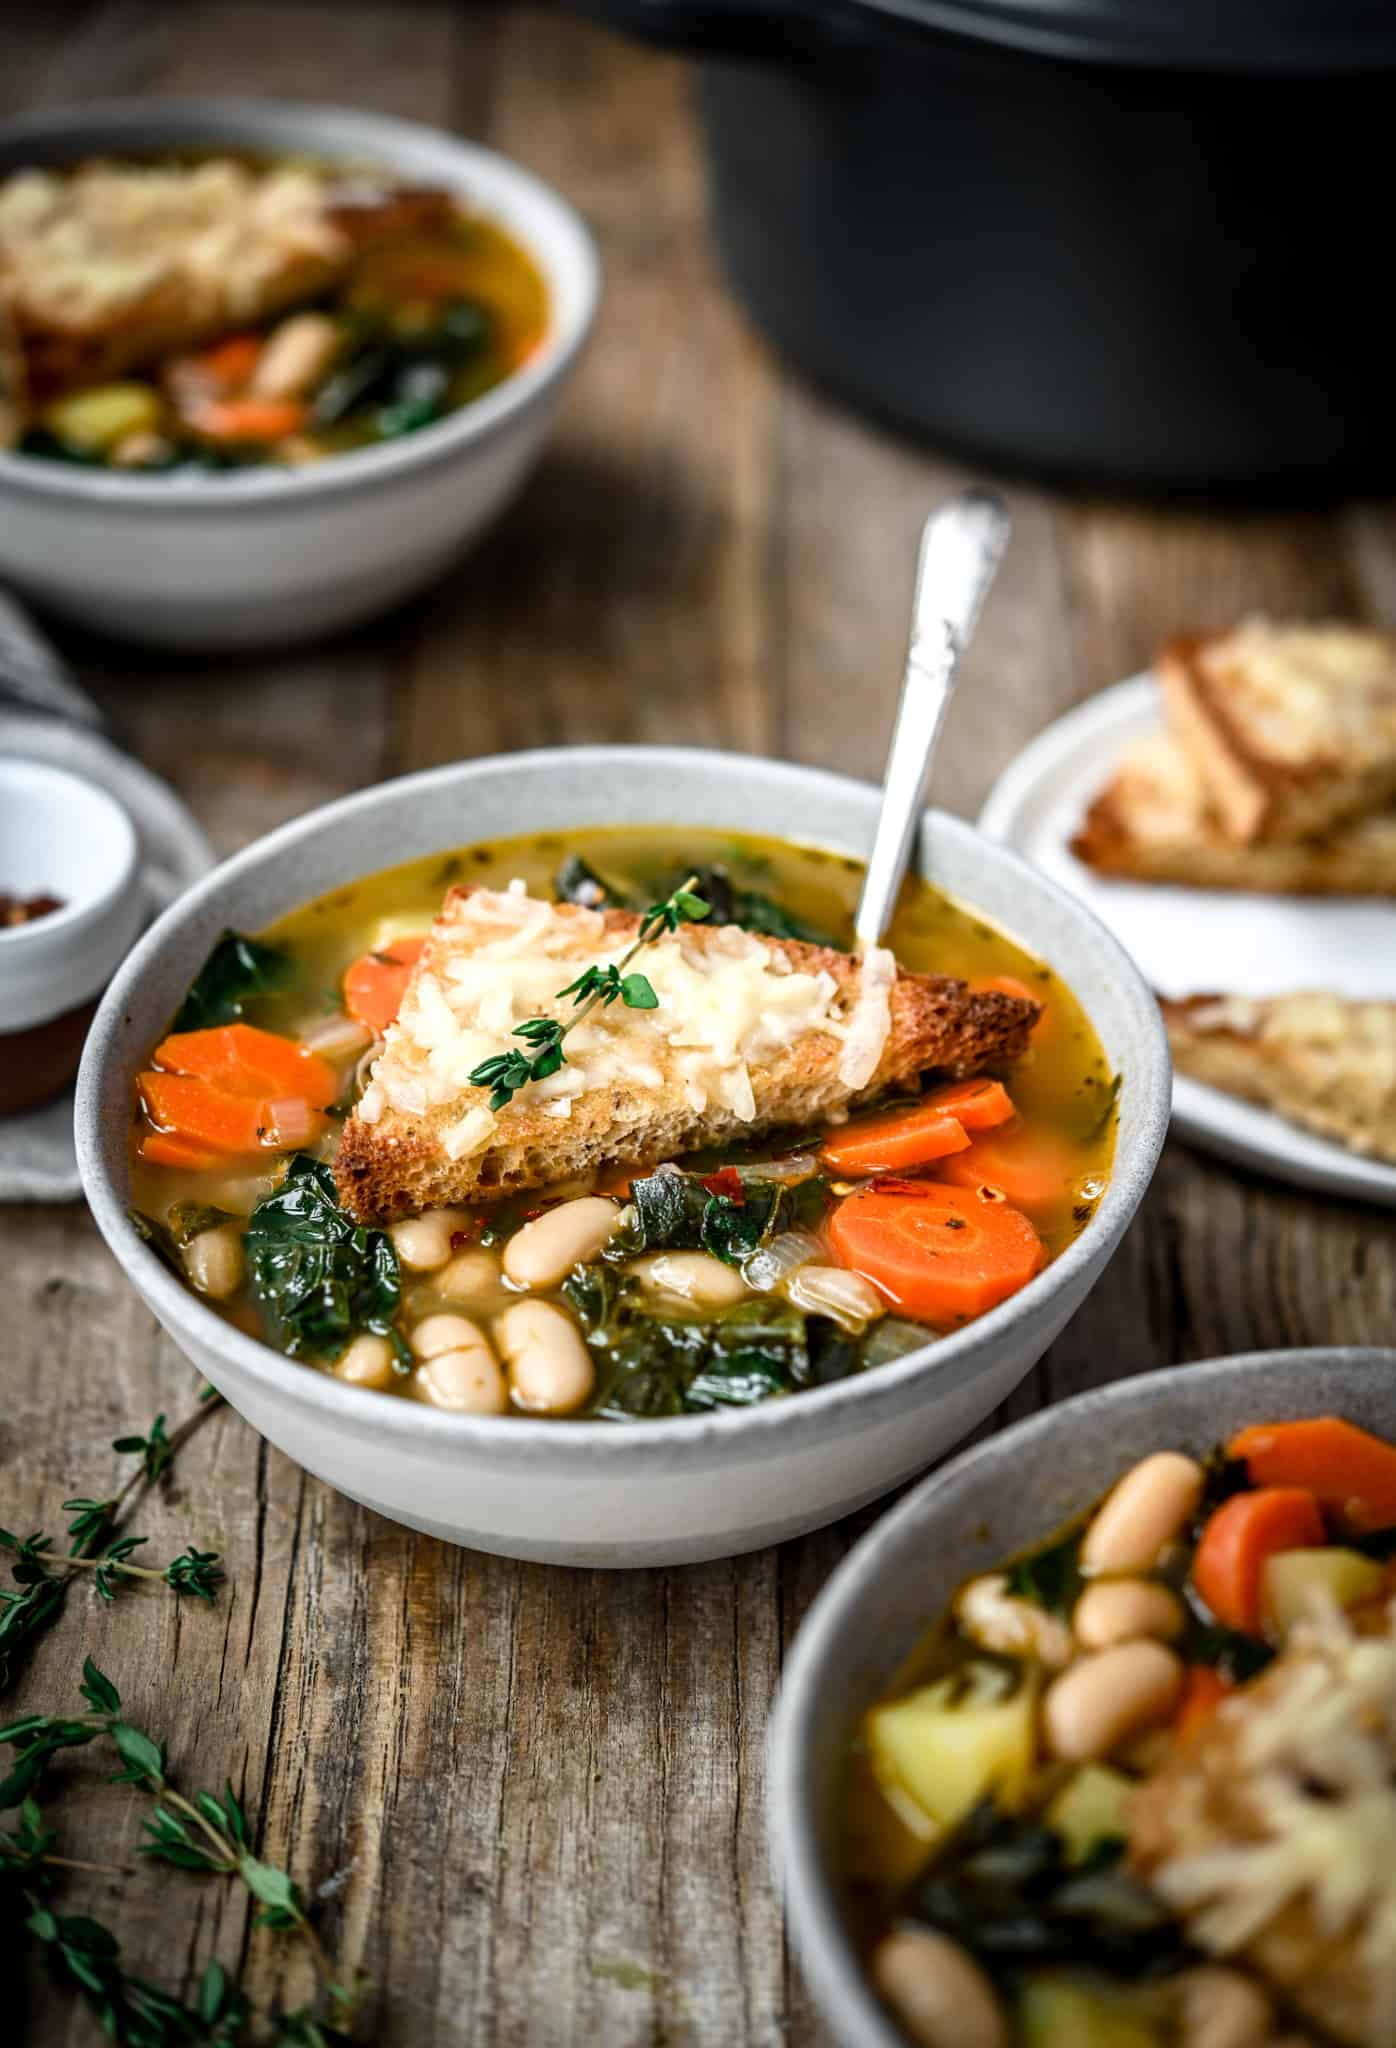 Side view of one-pot white bean kale soup in a grey bowl on a wood table